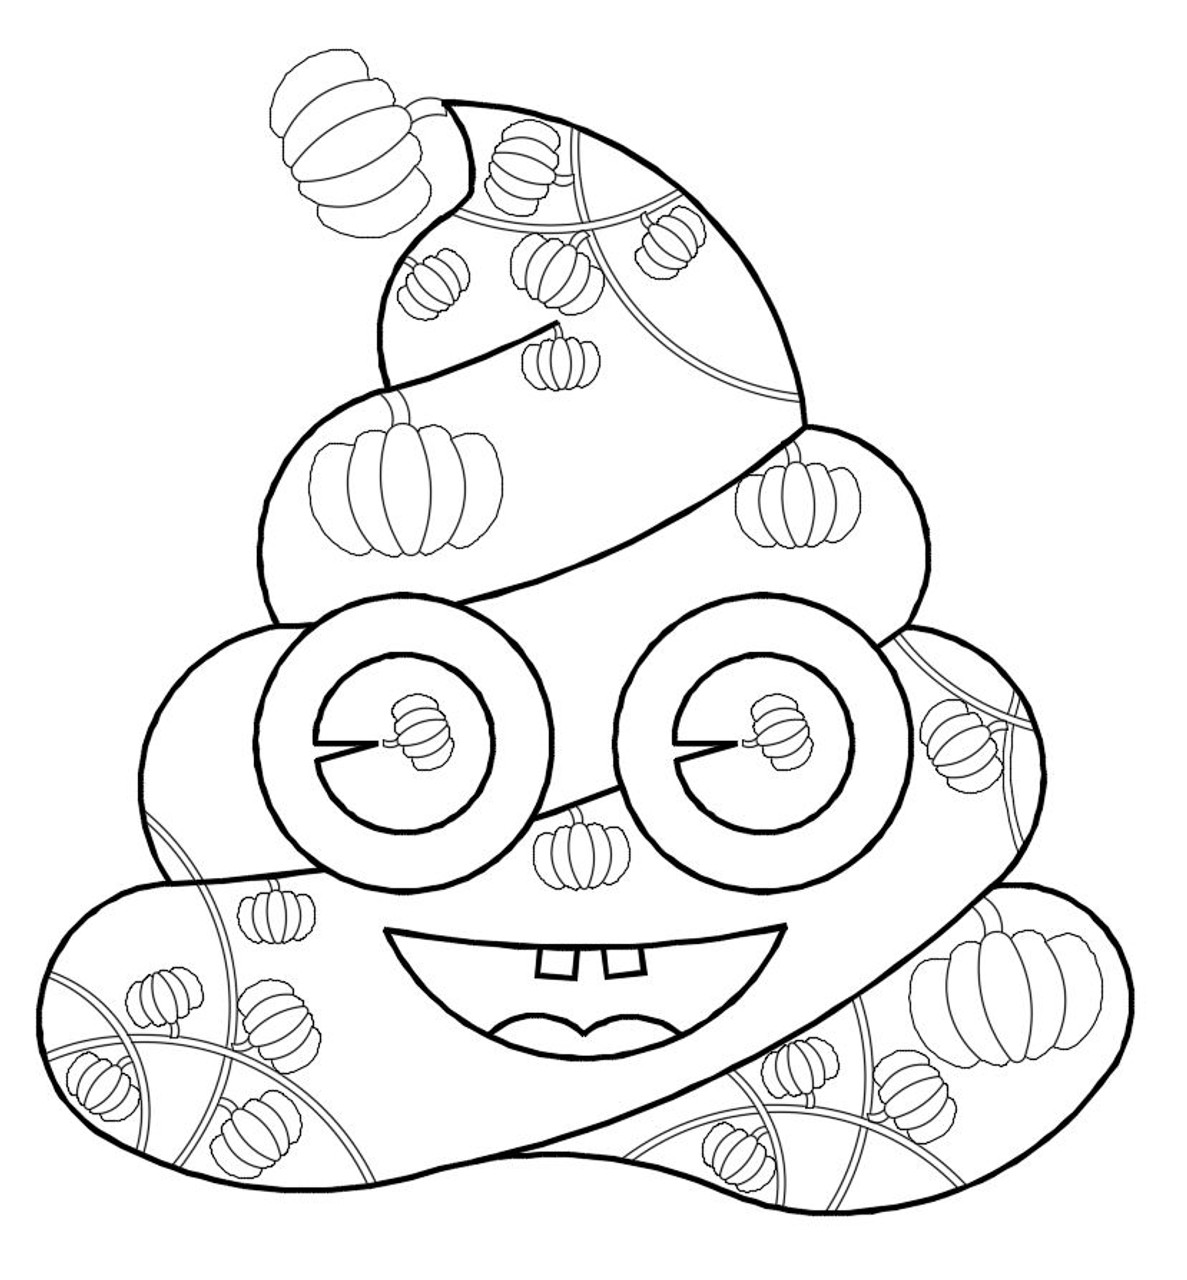 photograph about Printable Emoji Coloring Sheets titled Printable Poop Emoji Coloring -Boy or girl - Pumpkin, Pumpkin coloring web pages, Poop Emoji coloring